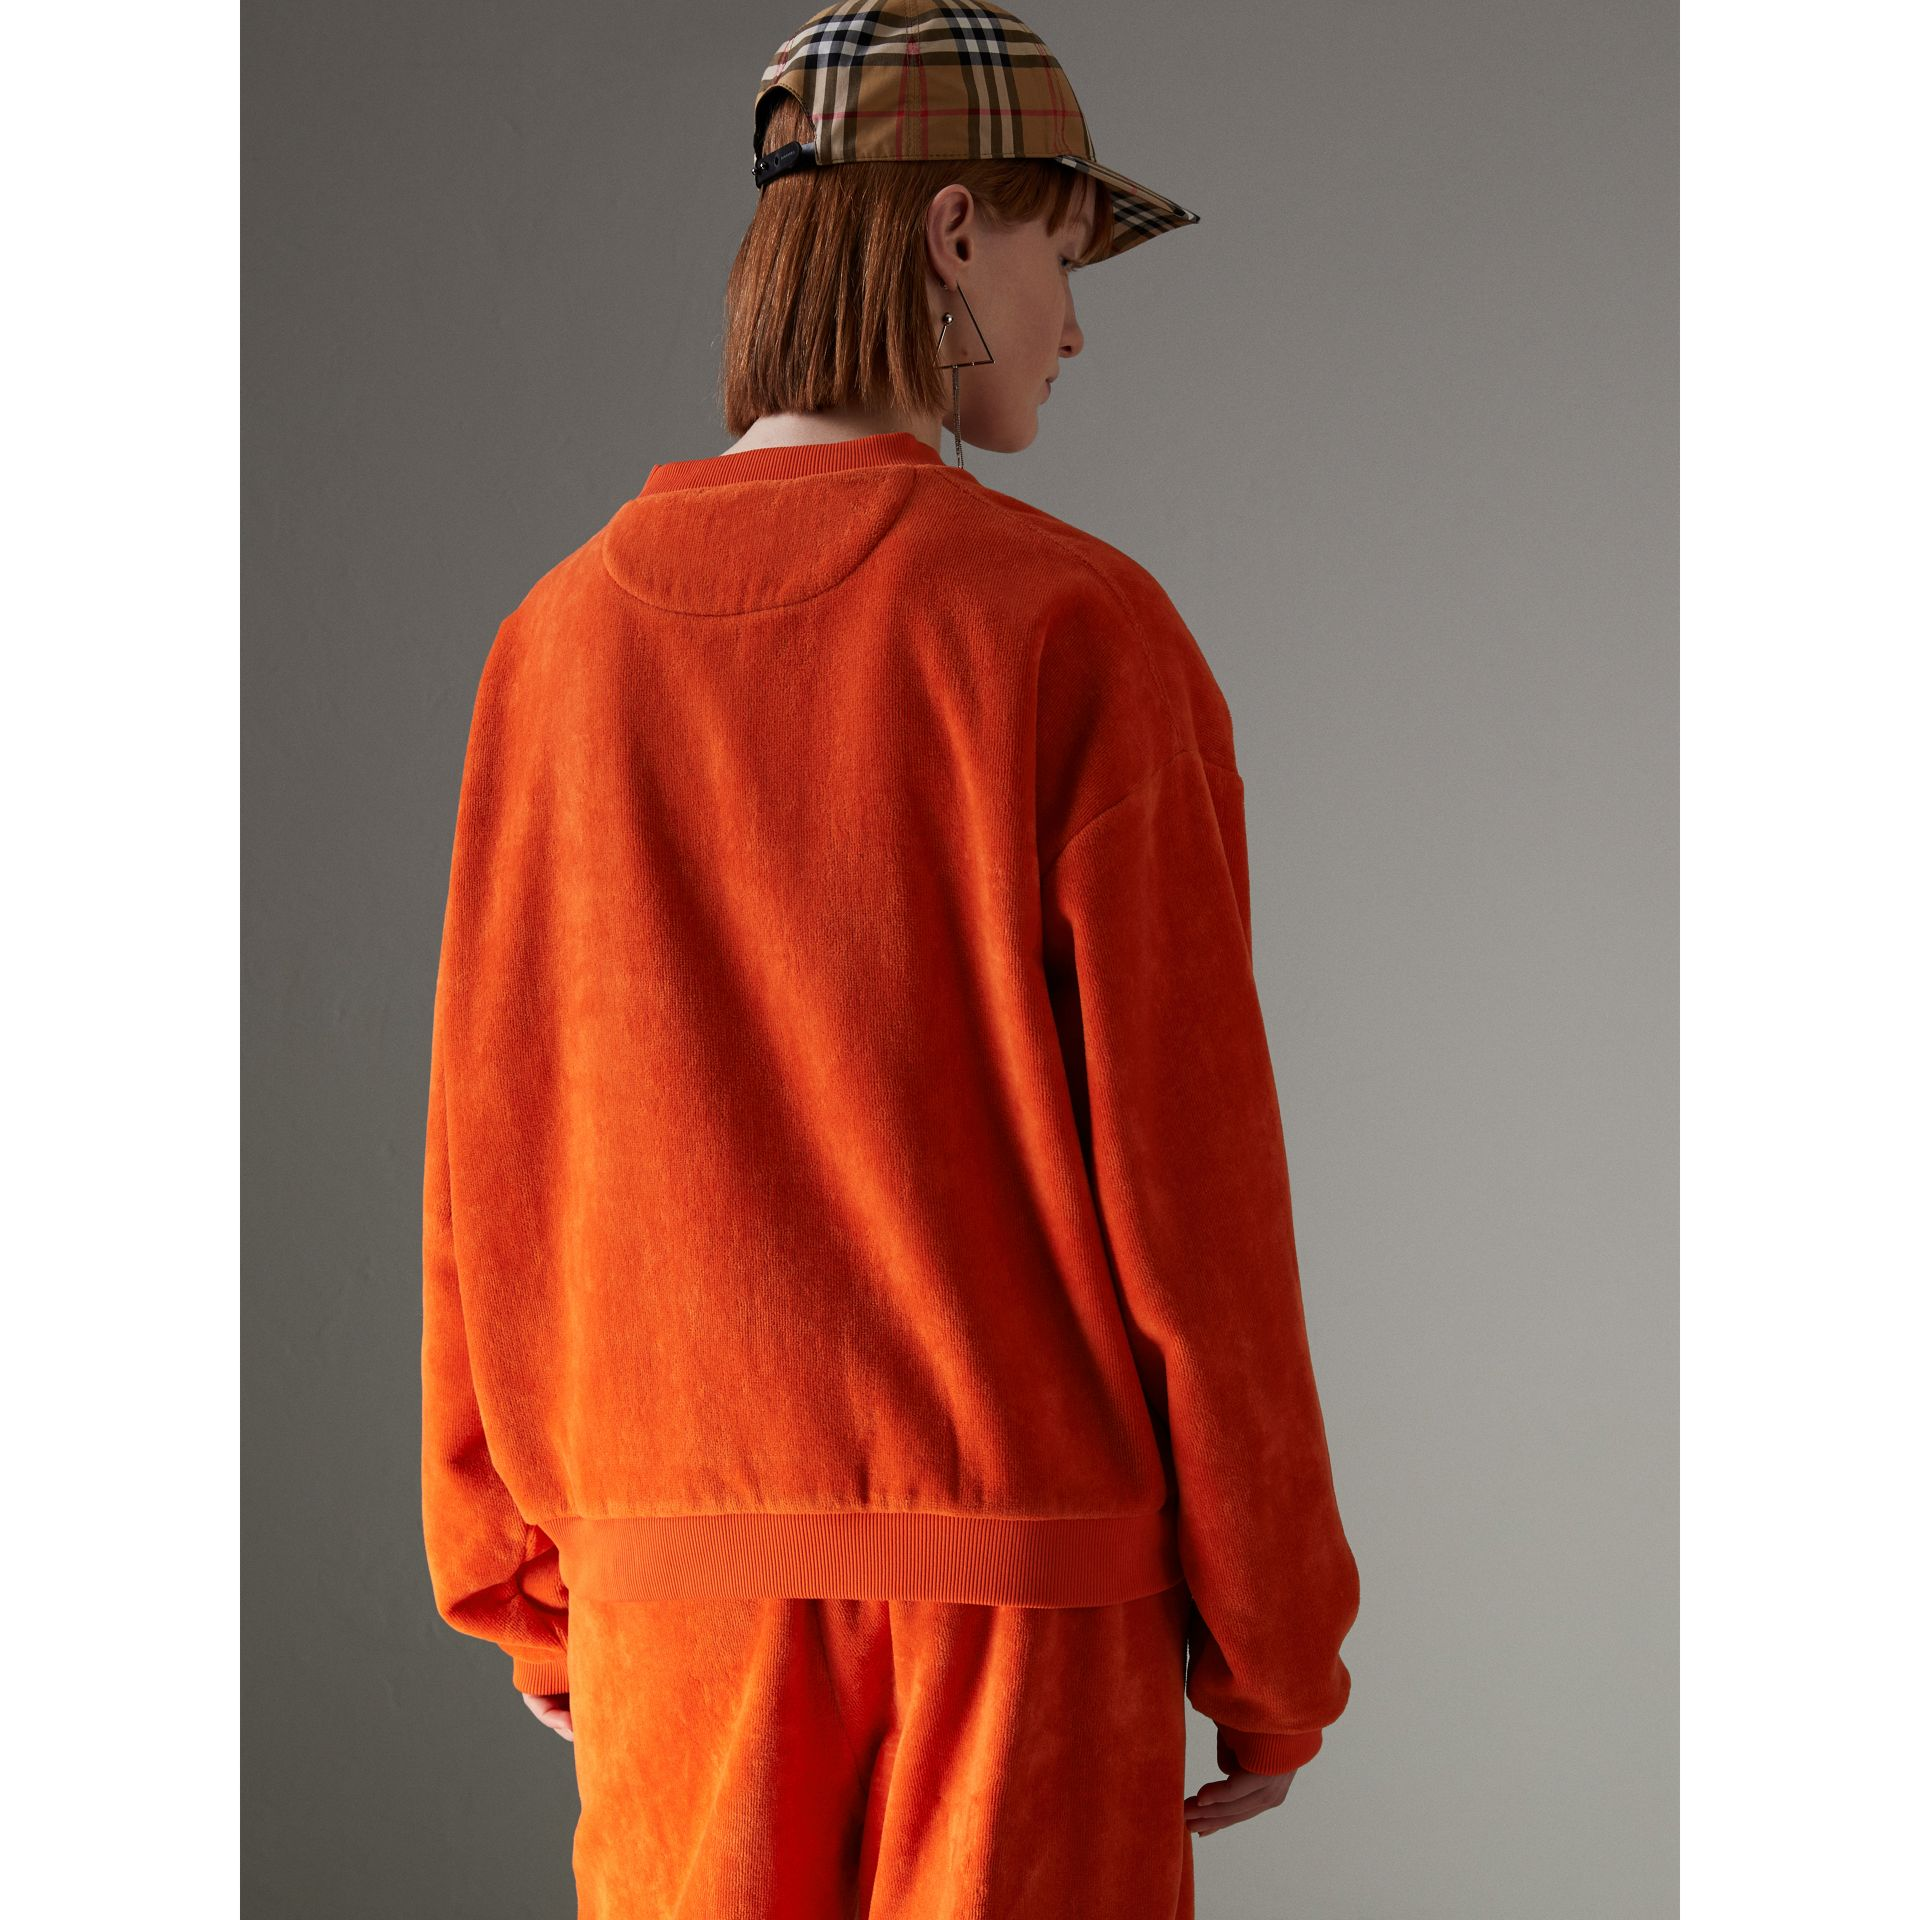 Archive Logo Towelling Sweatshirt in Tangerine - Women | Burberry Canada - gallery image 2